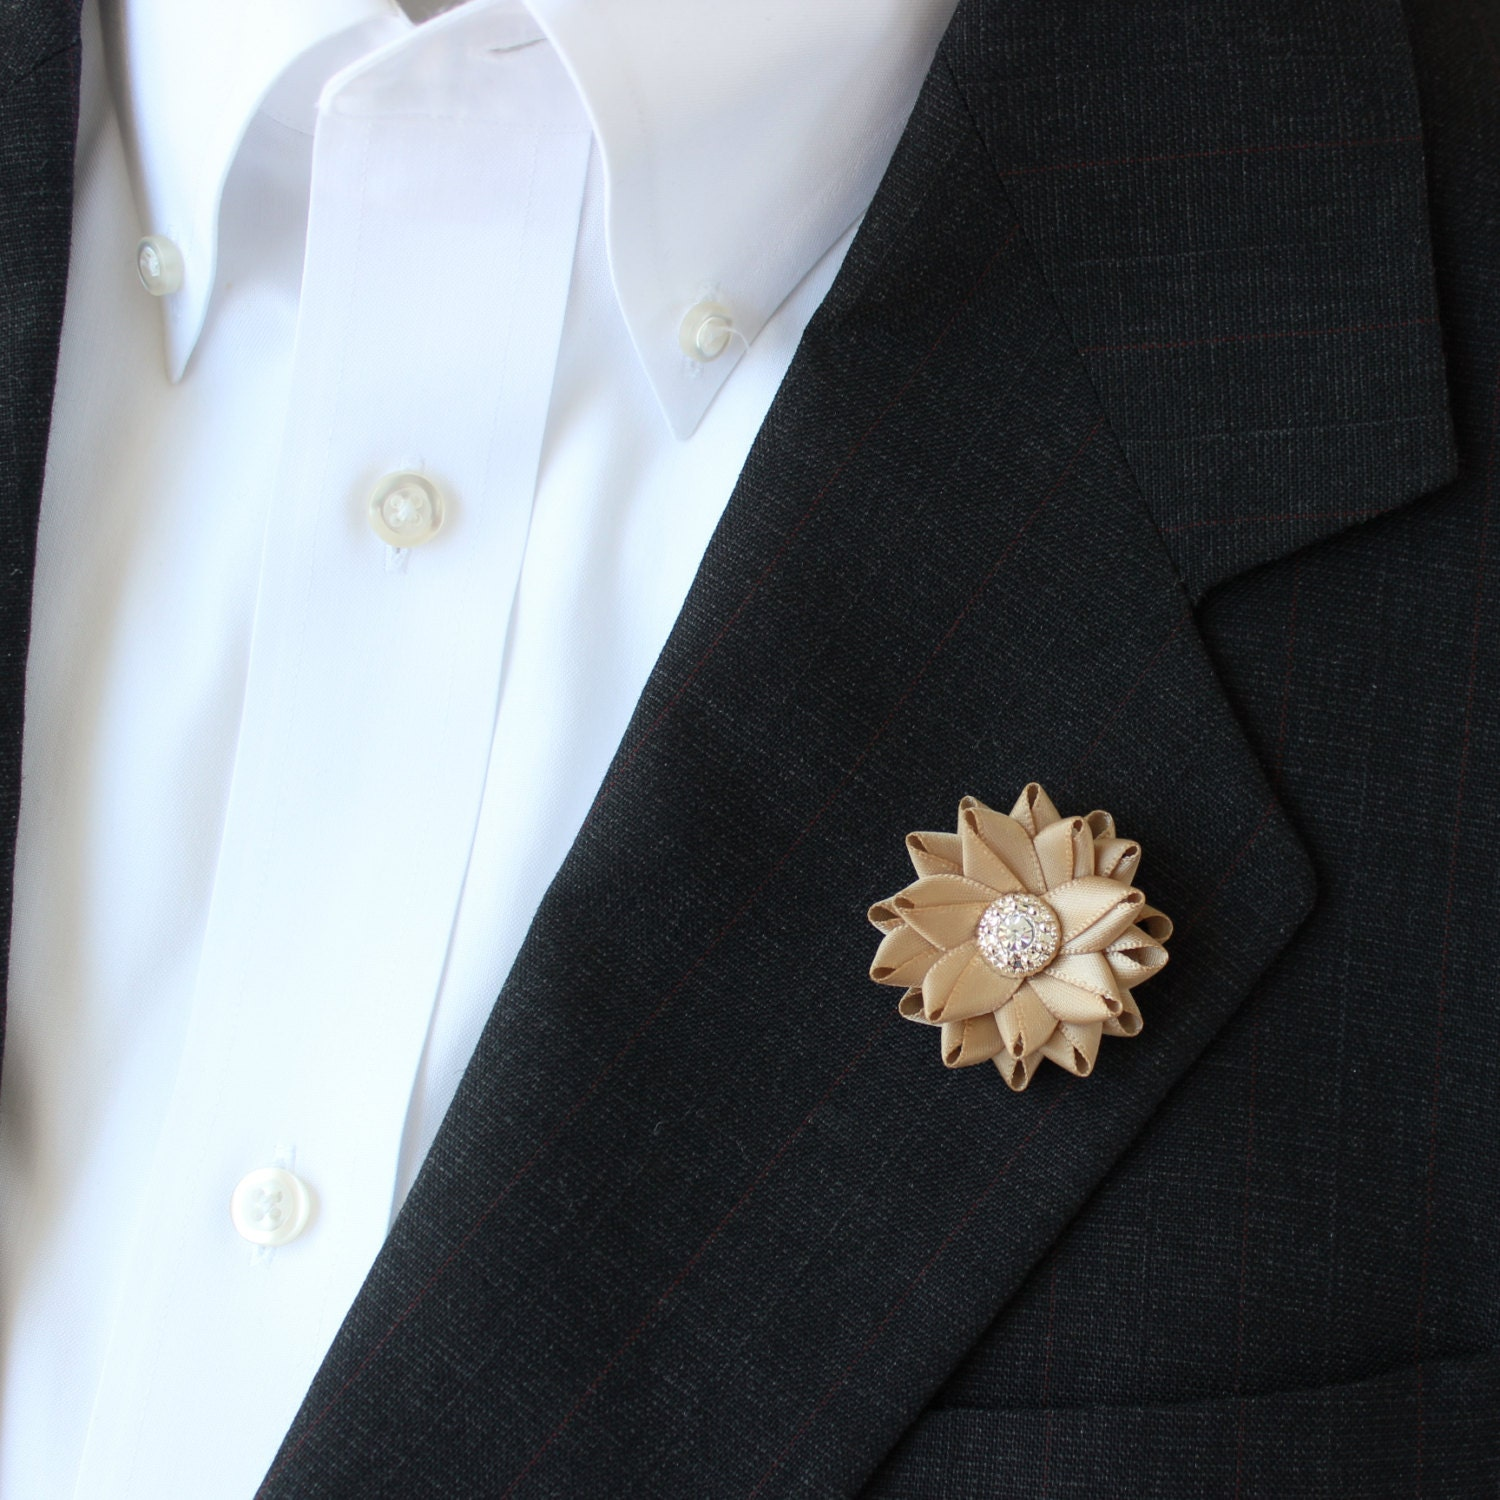 thestyledoodler the nehru brooch suit jacket